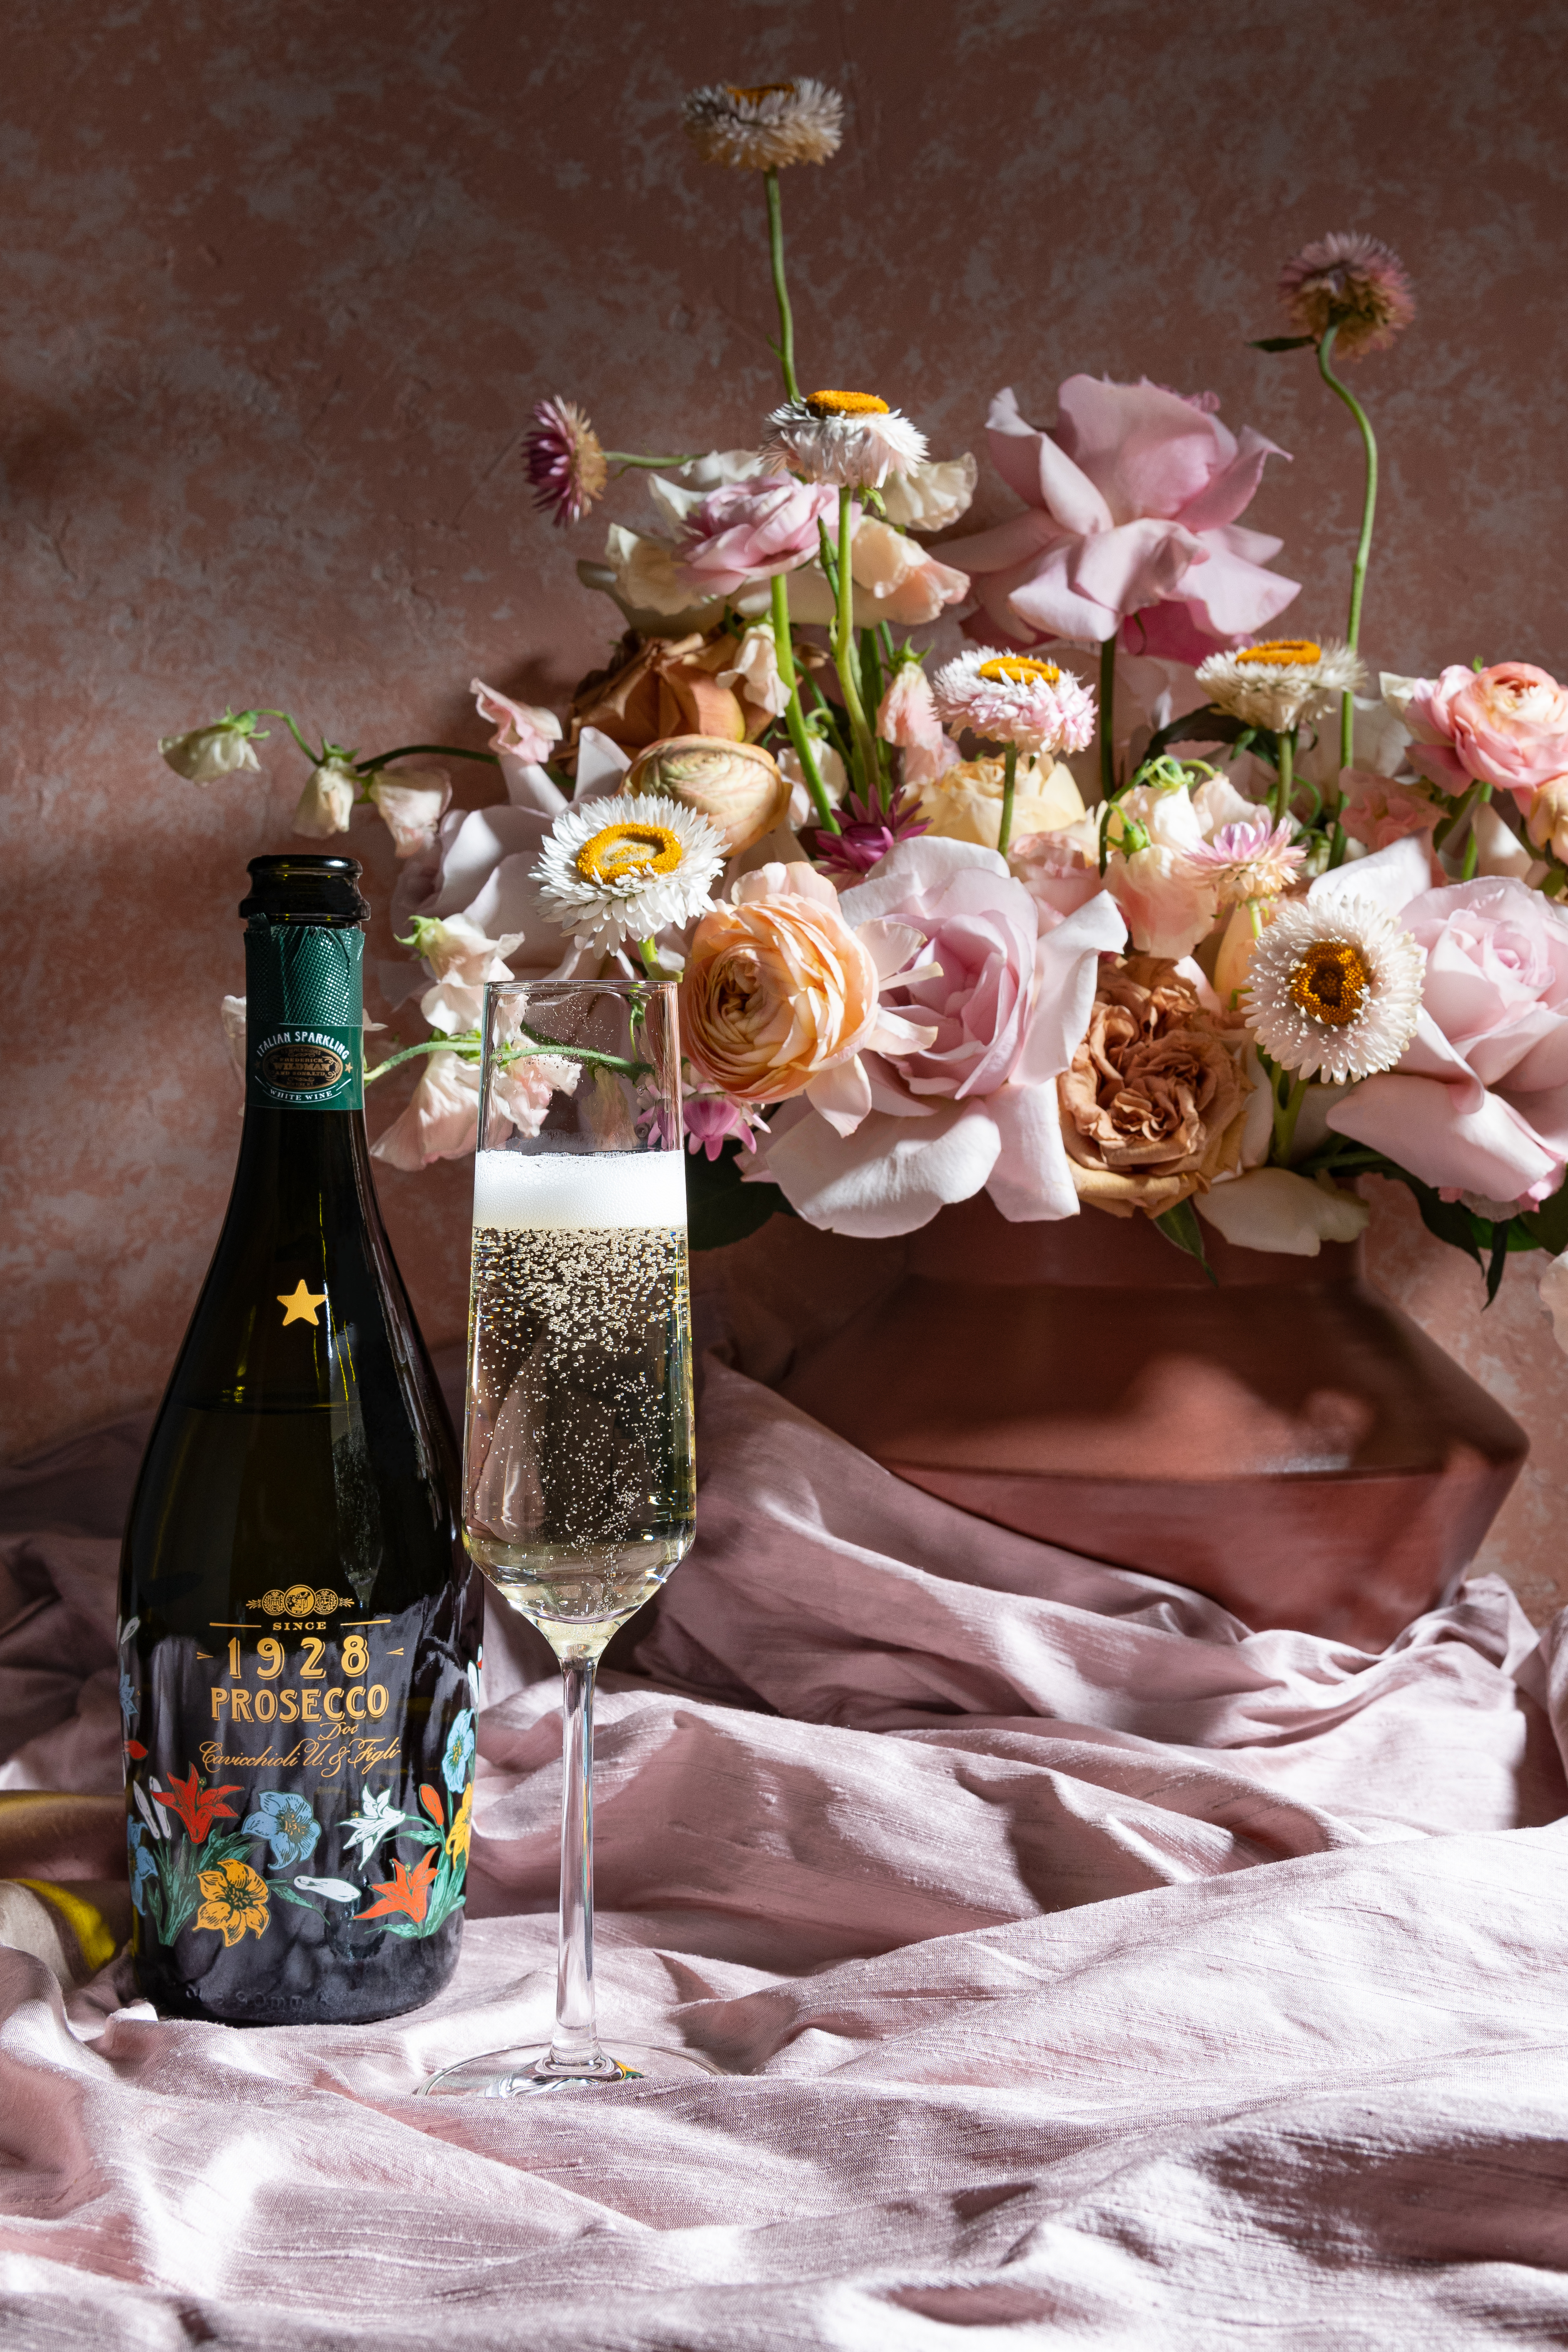 NYC and Chicago Product Photographer - Cavicchioli Prosecco